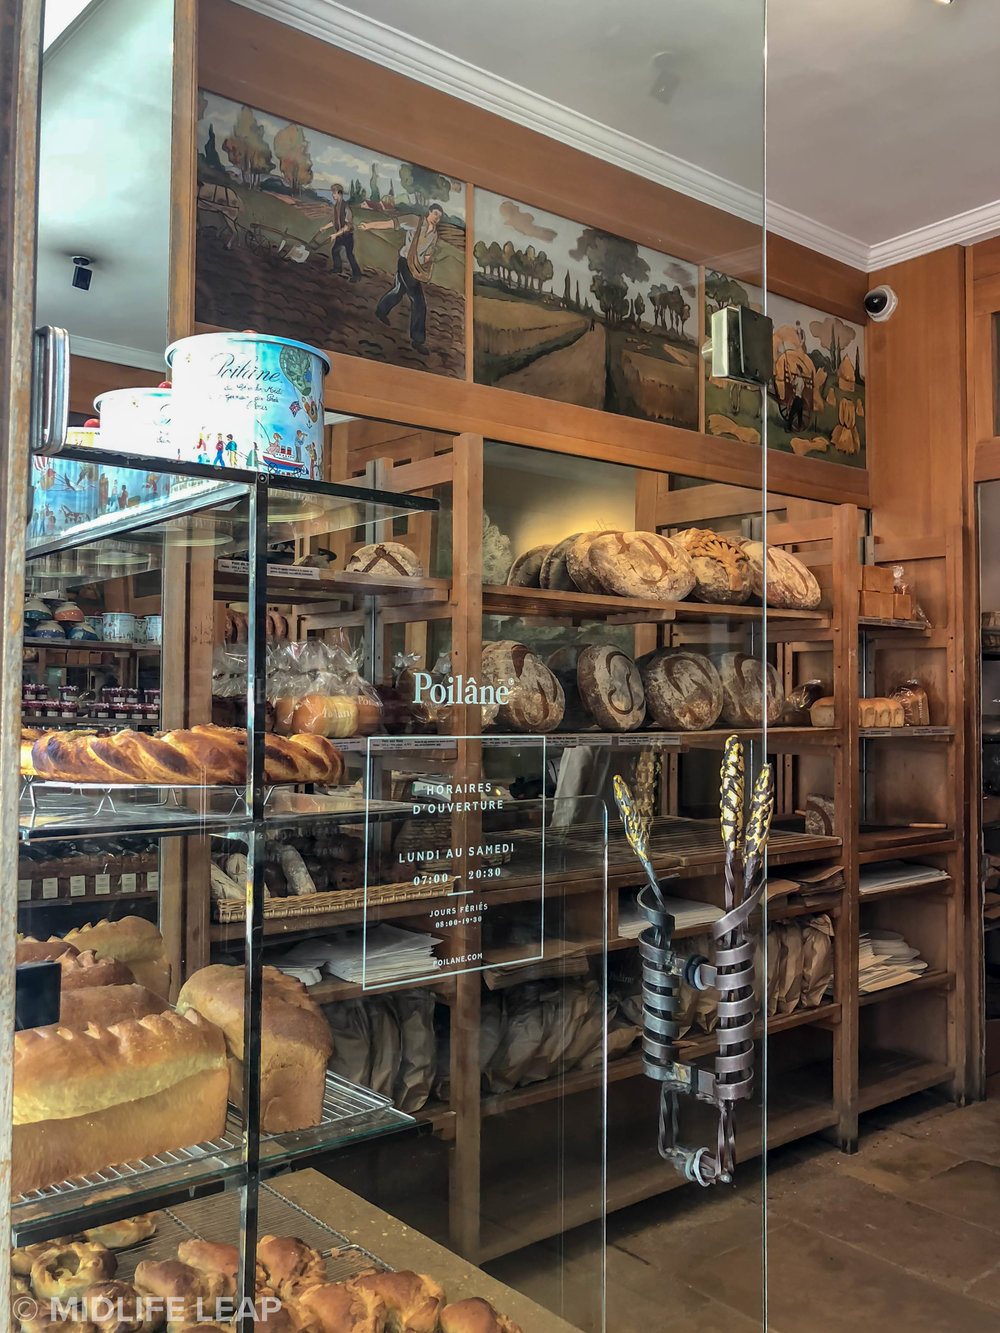 best-boulangeries-in-paris-boulangerie-poilane